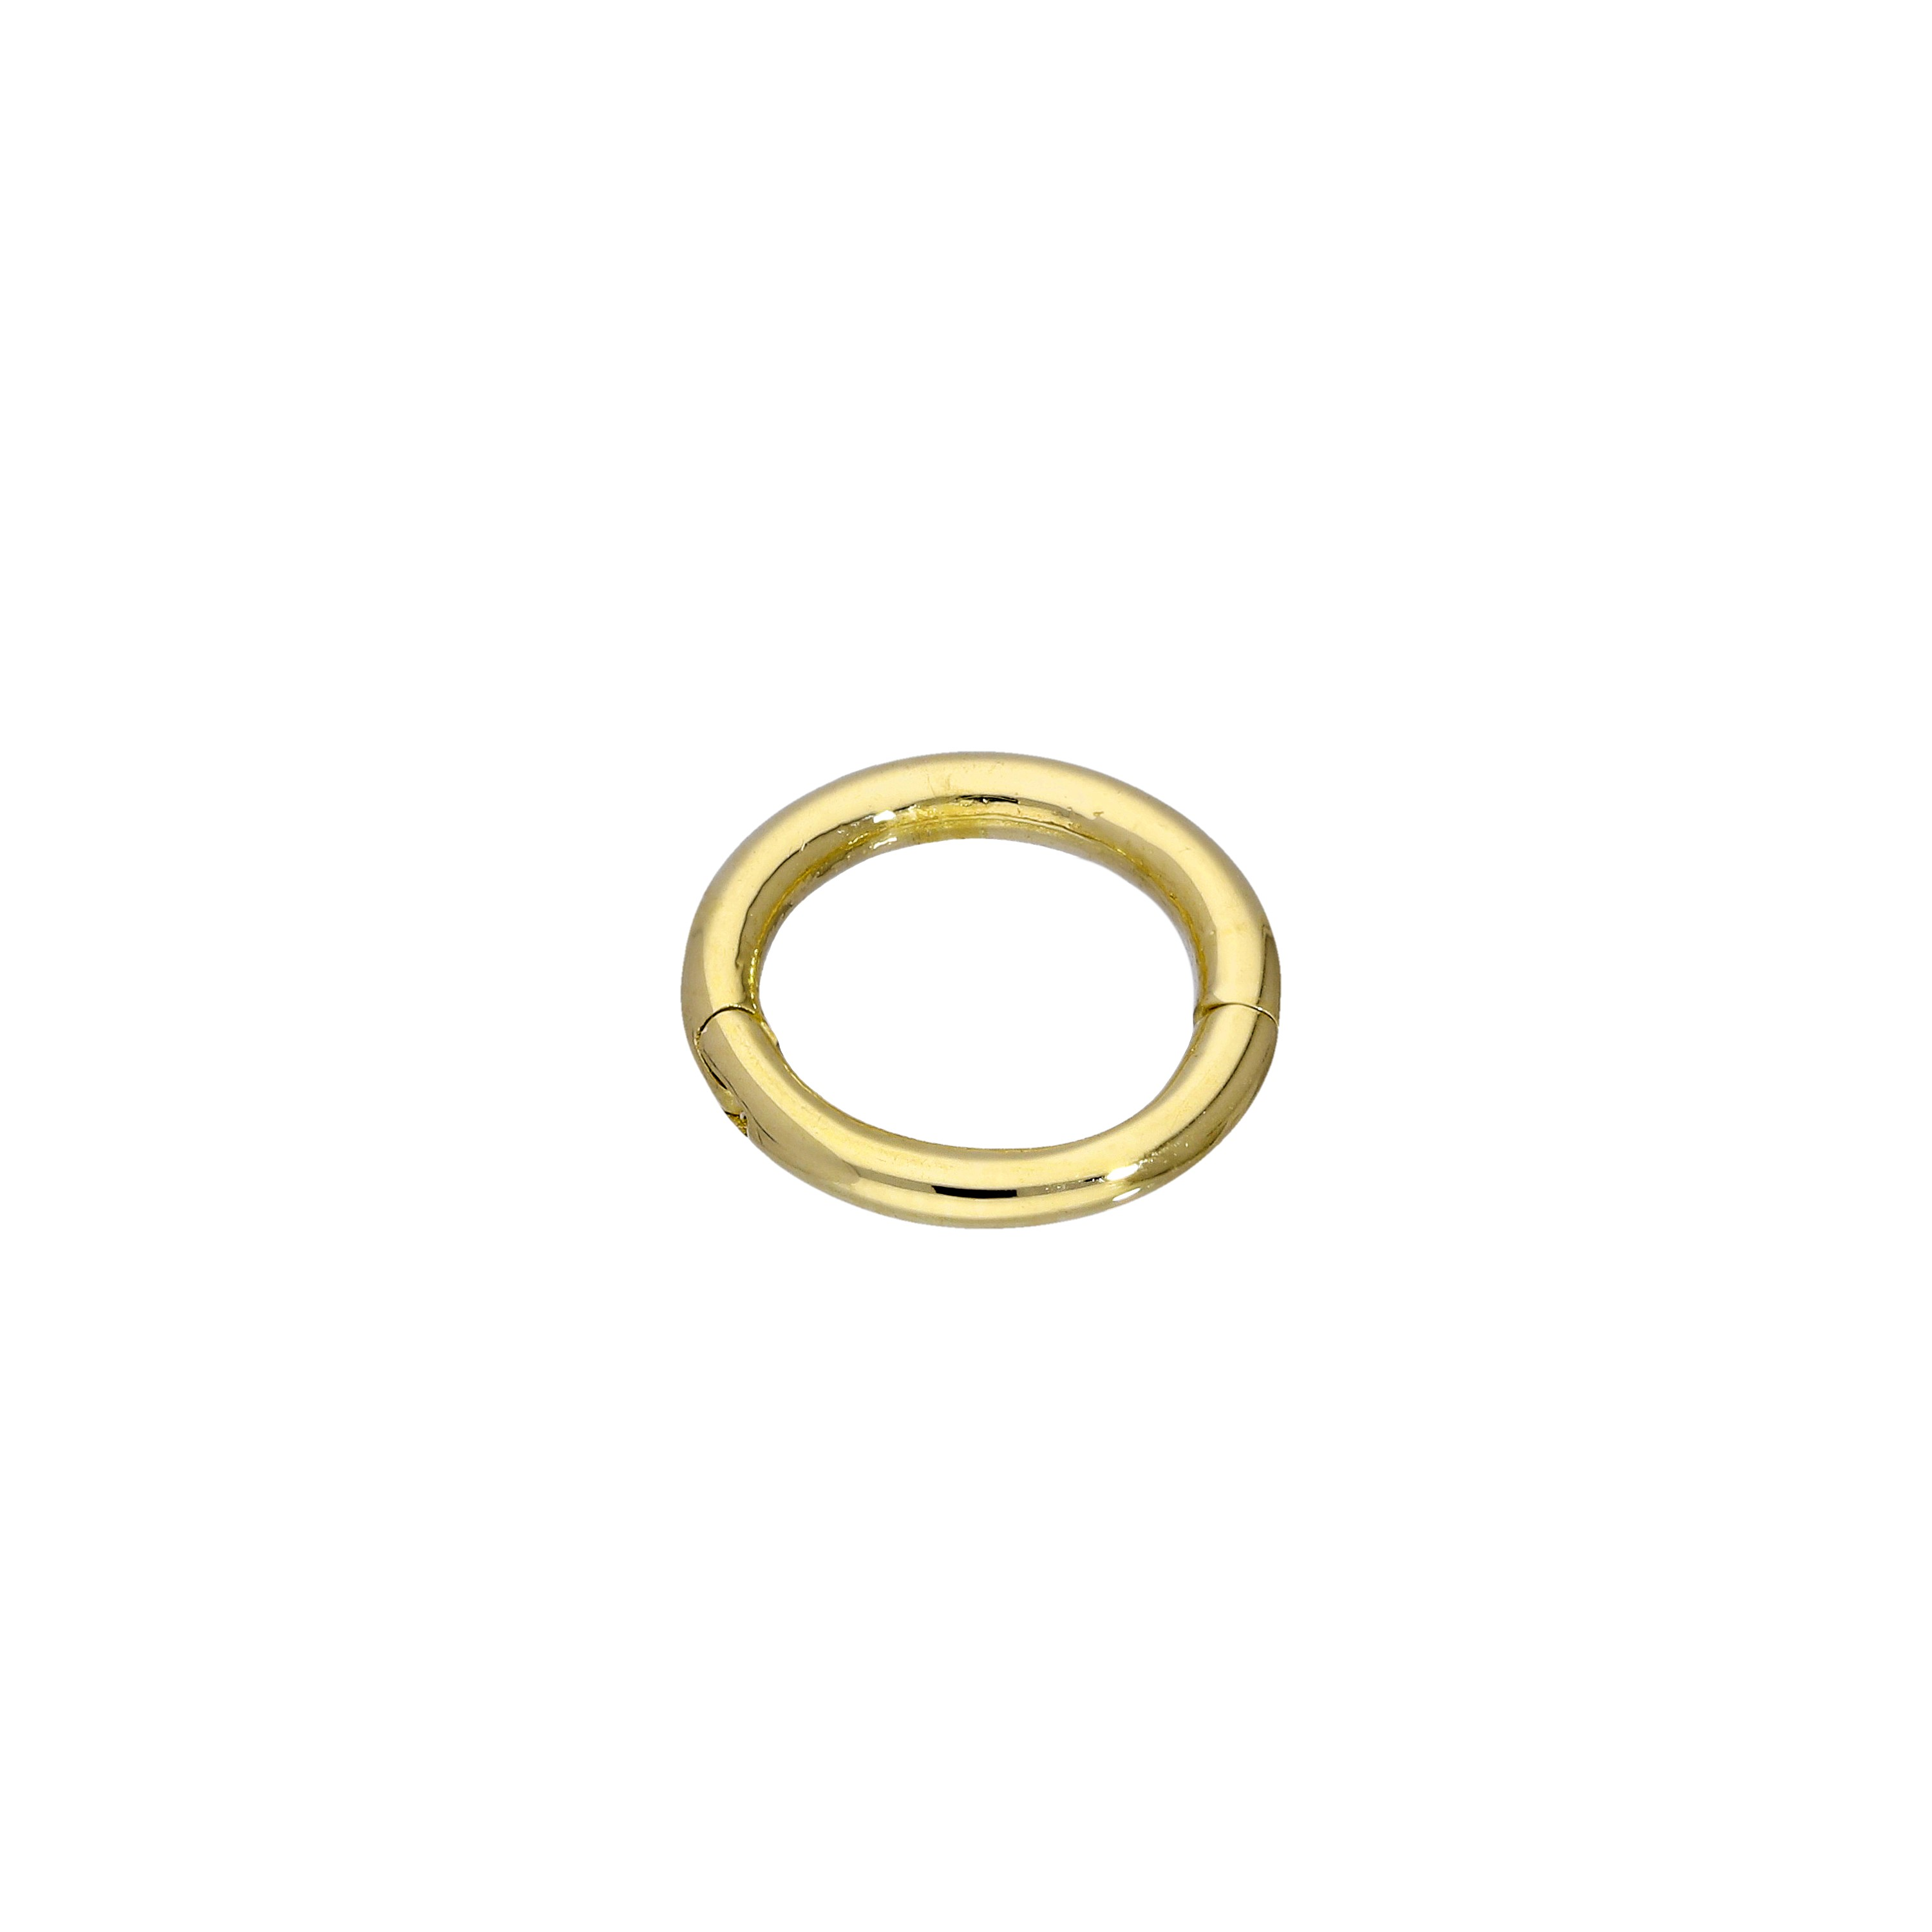 Real 375 9ct Gold 16ga Nose Ring Body Jewellery Piercing Face